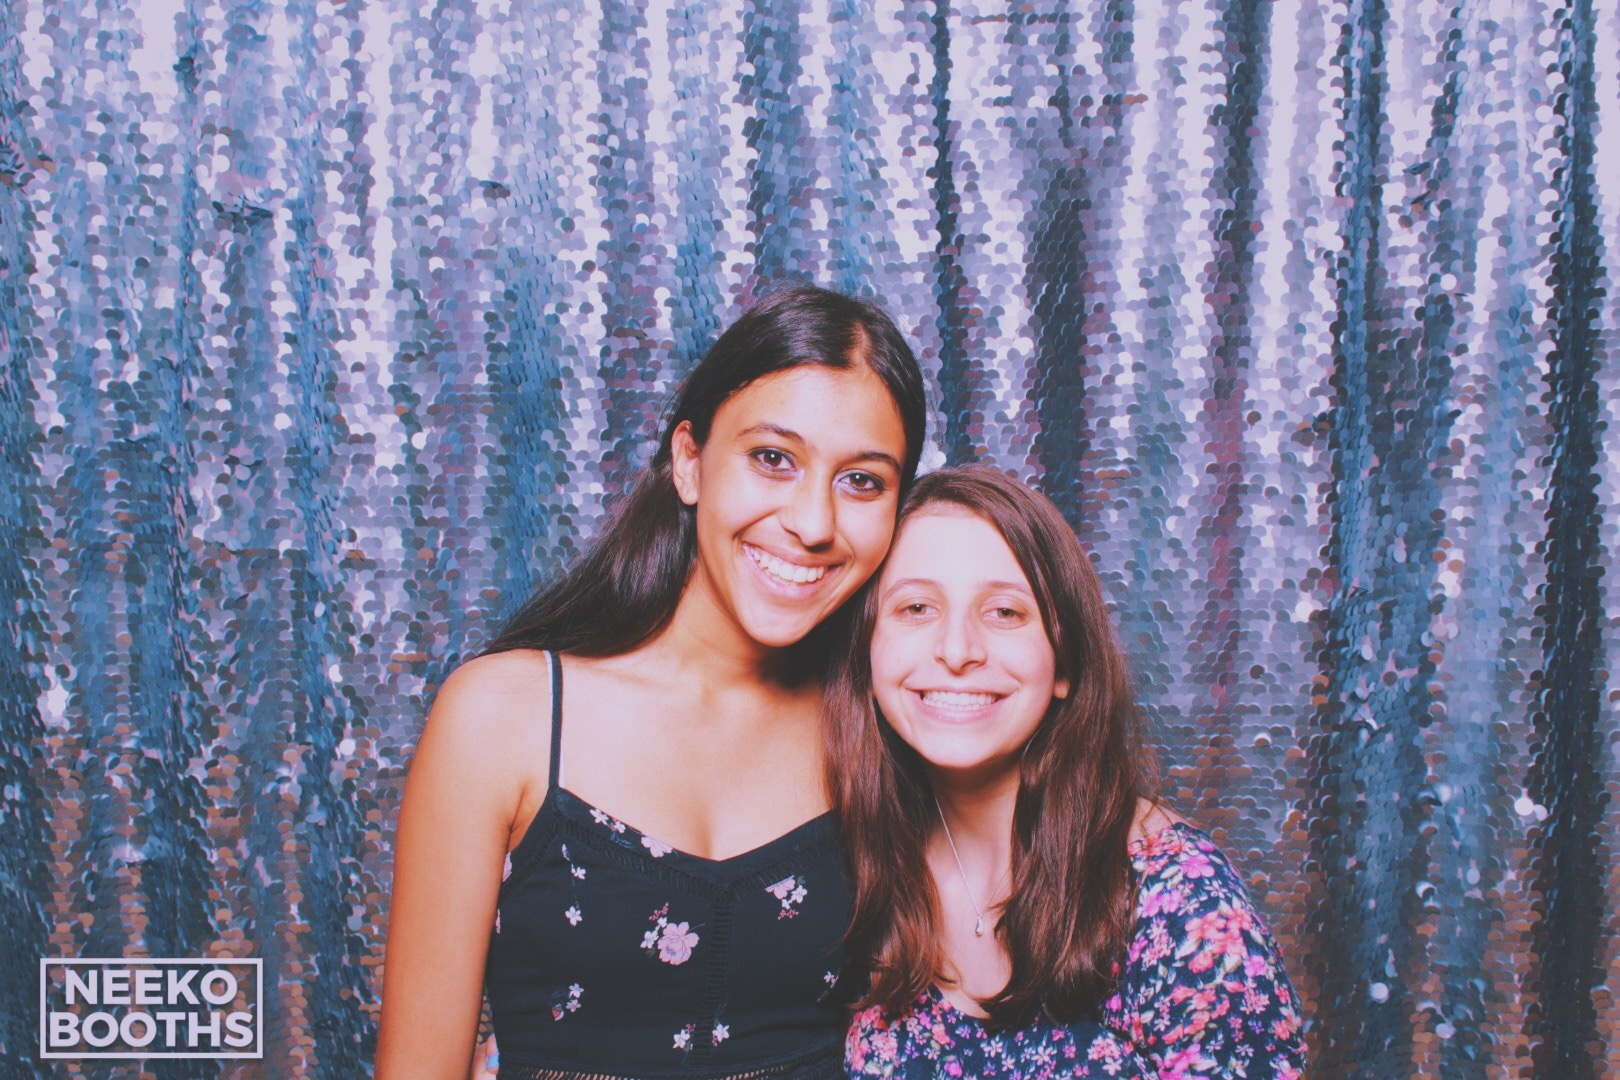 A picture of me and my friend Lauren at the Gala last night!